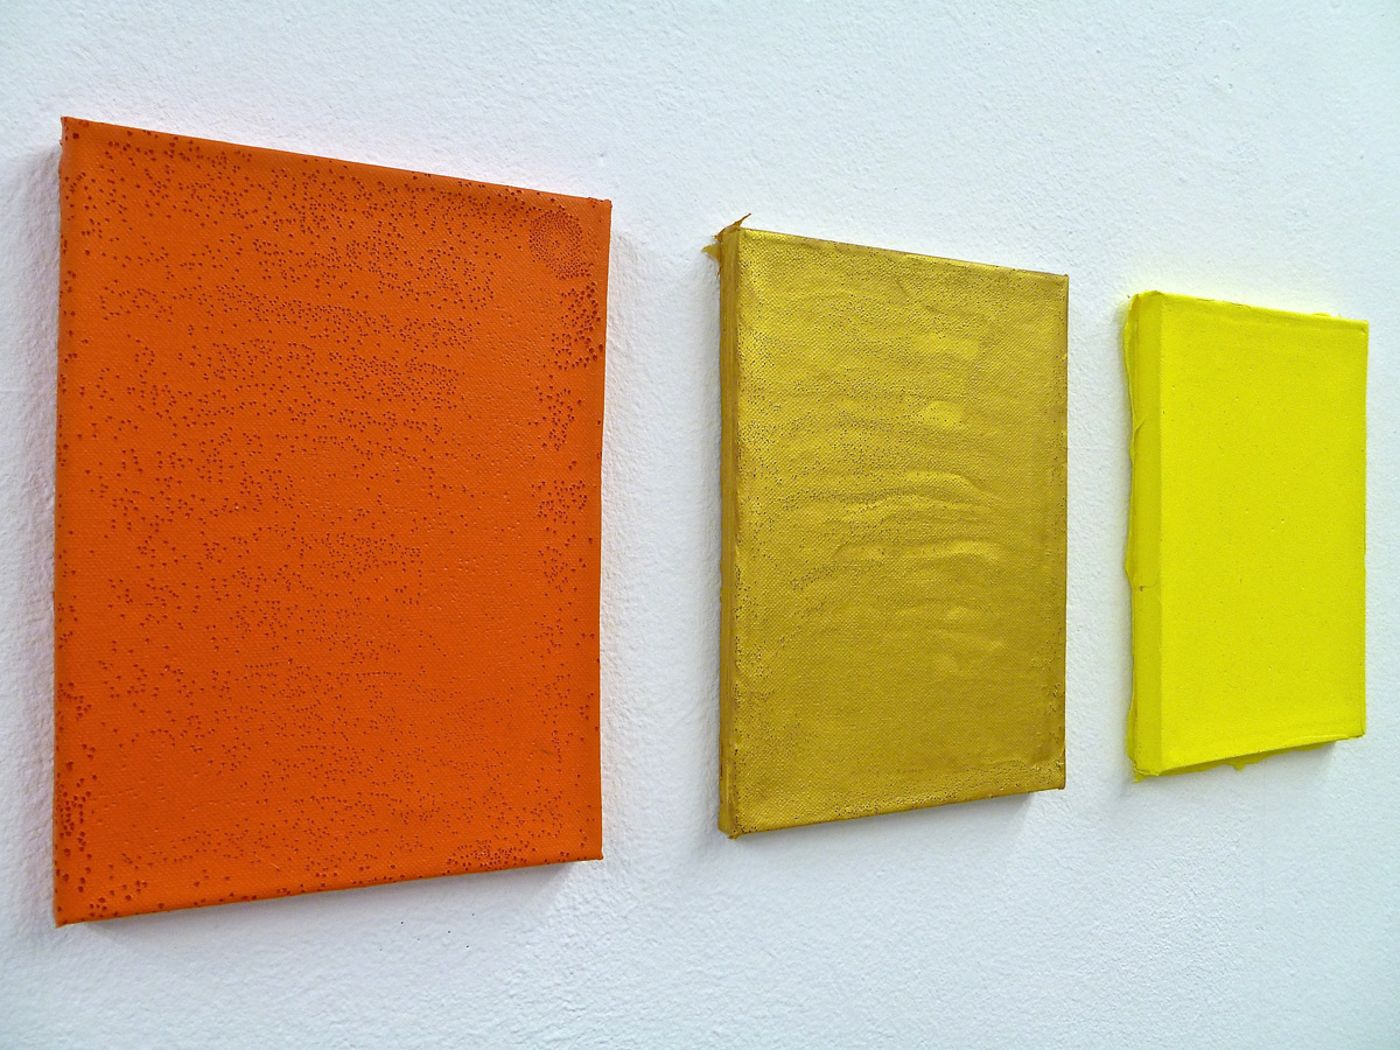 Seitenaufnahme, Ateliersituation, Color for Paint, orange, gold and yellow